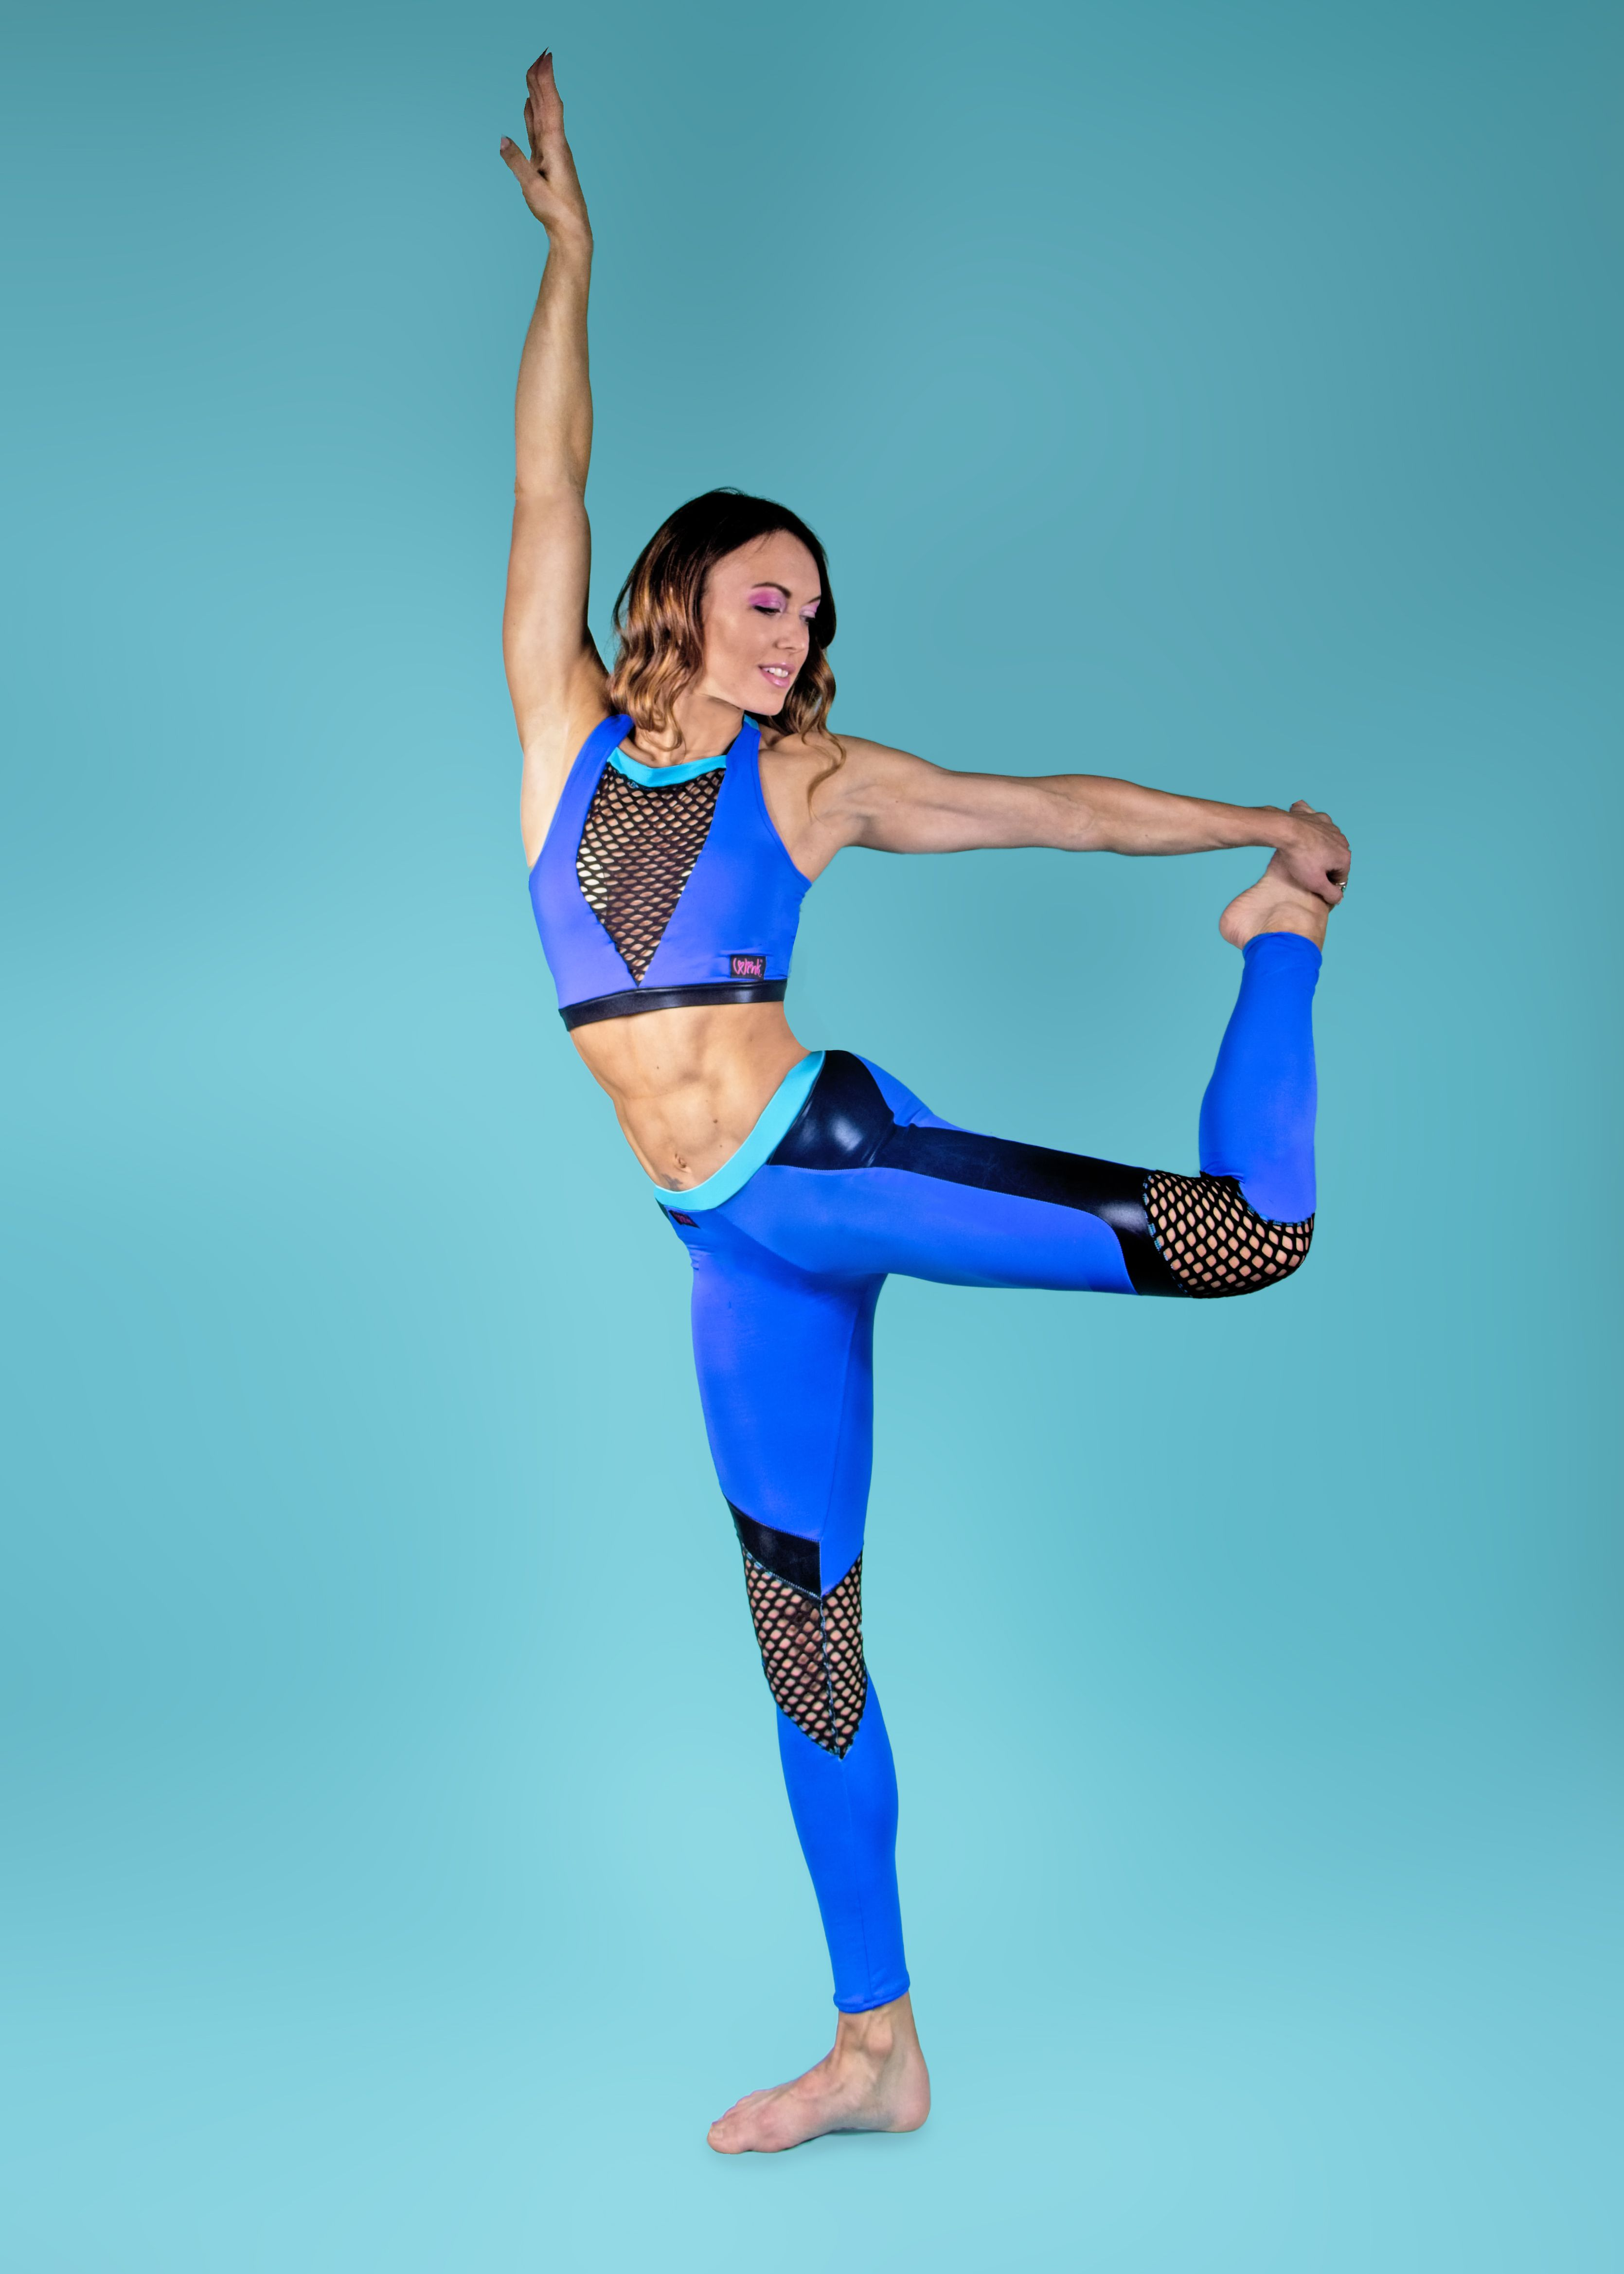 Royal Blue and Turquoise Camilla Set | Pole fitness ...